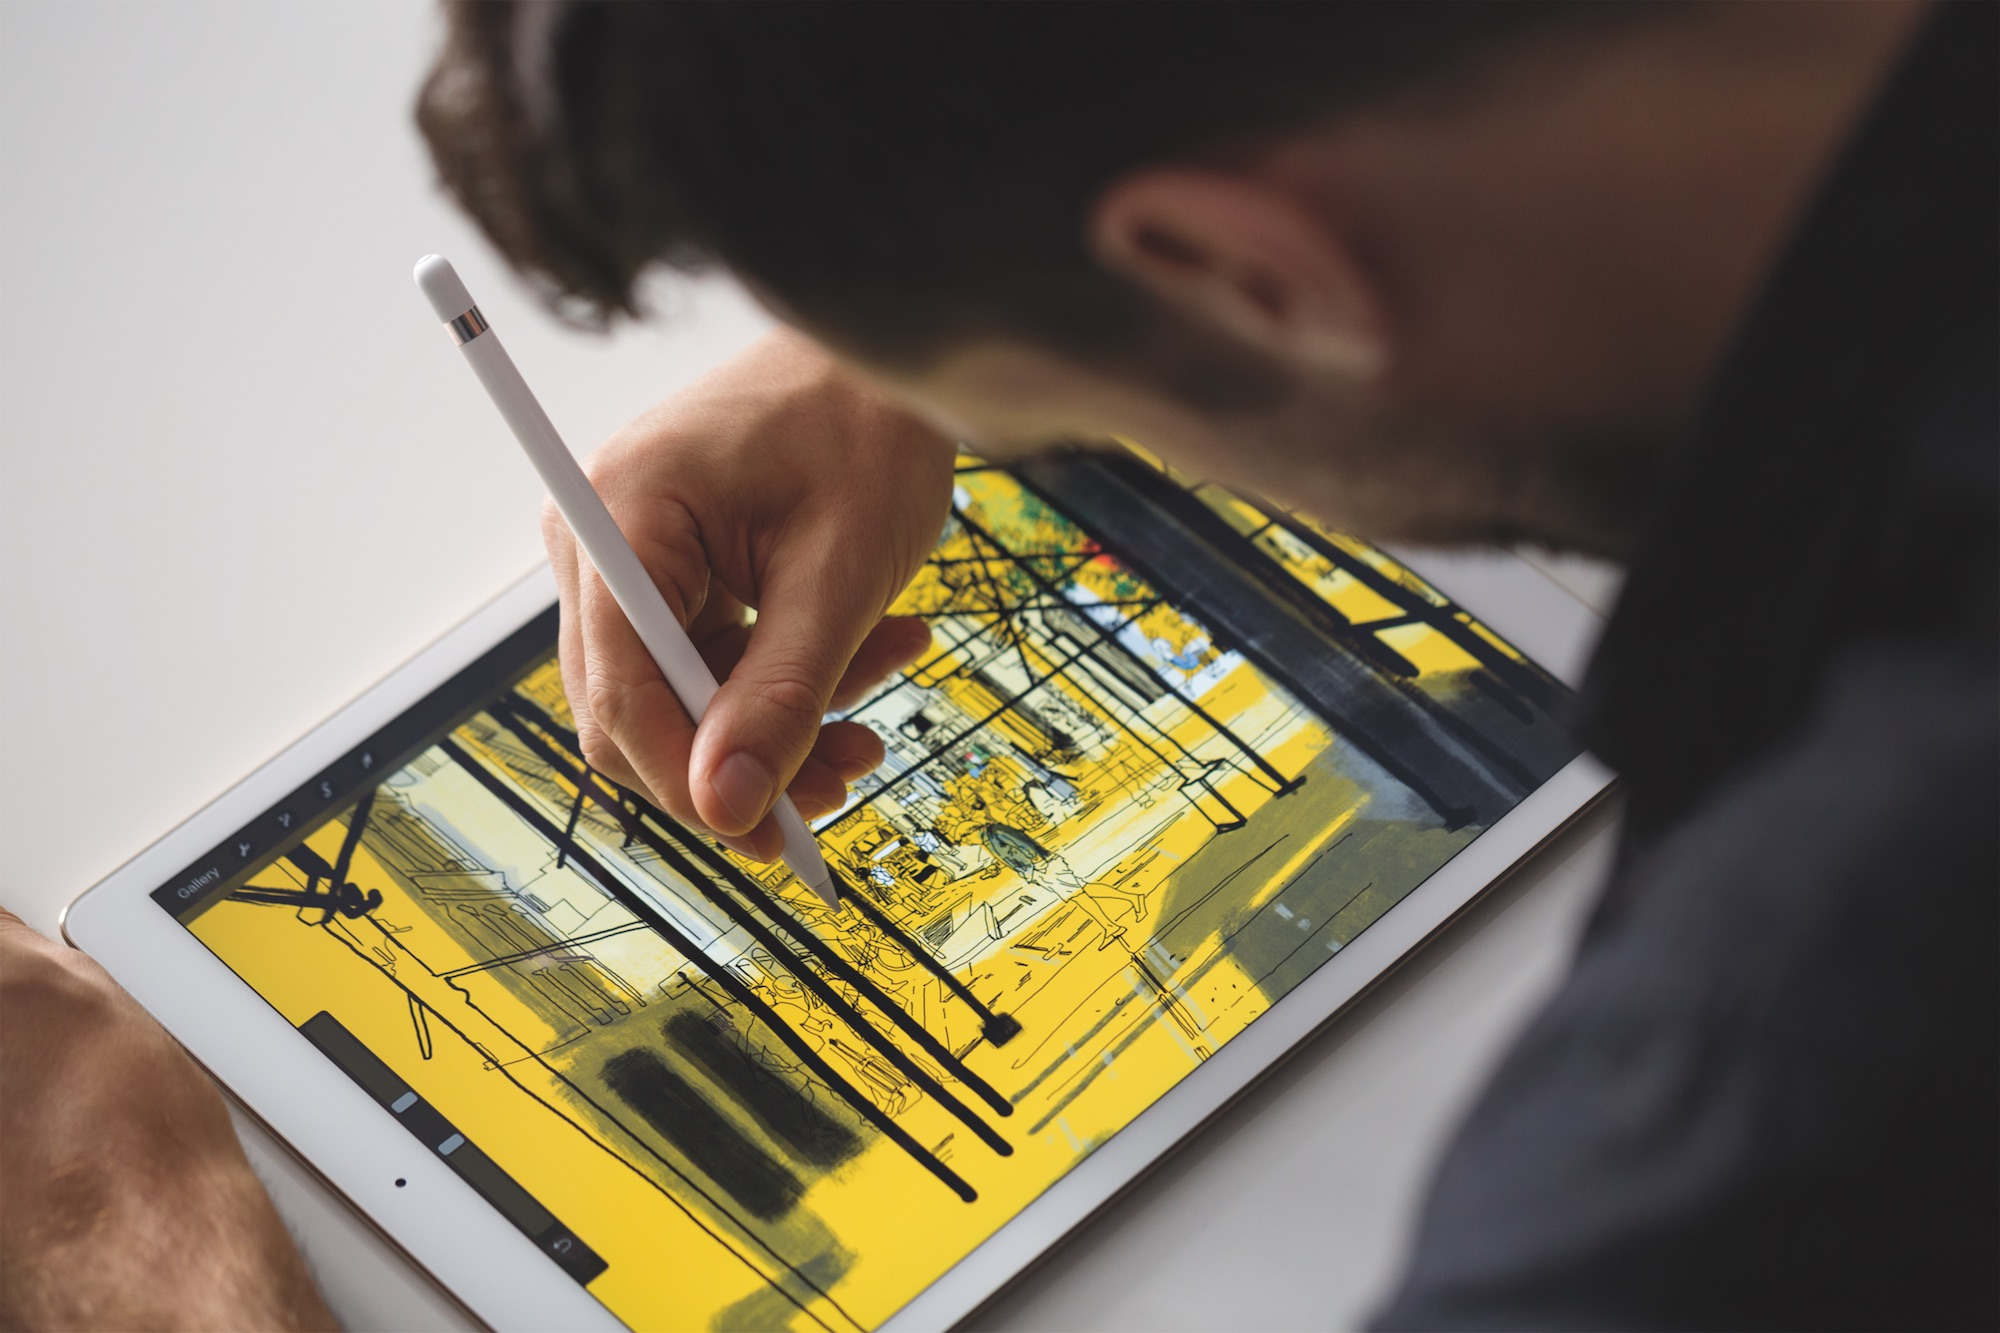 Holiday quarter iPad Pro sales expected to top 2.4 million units